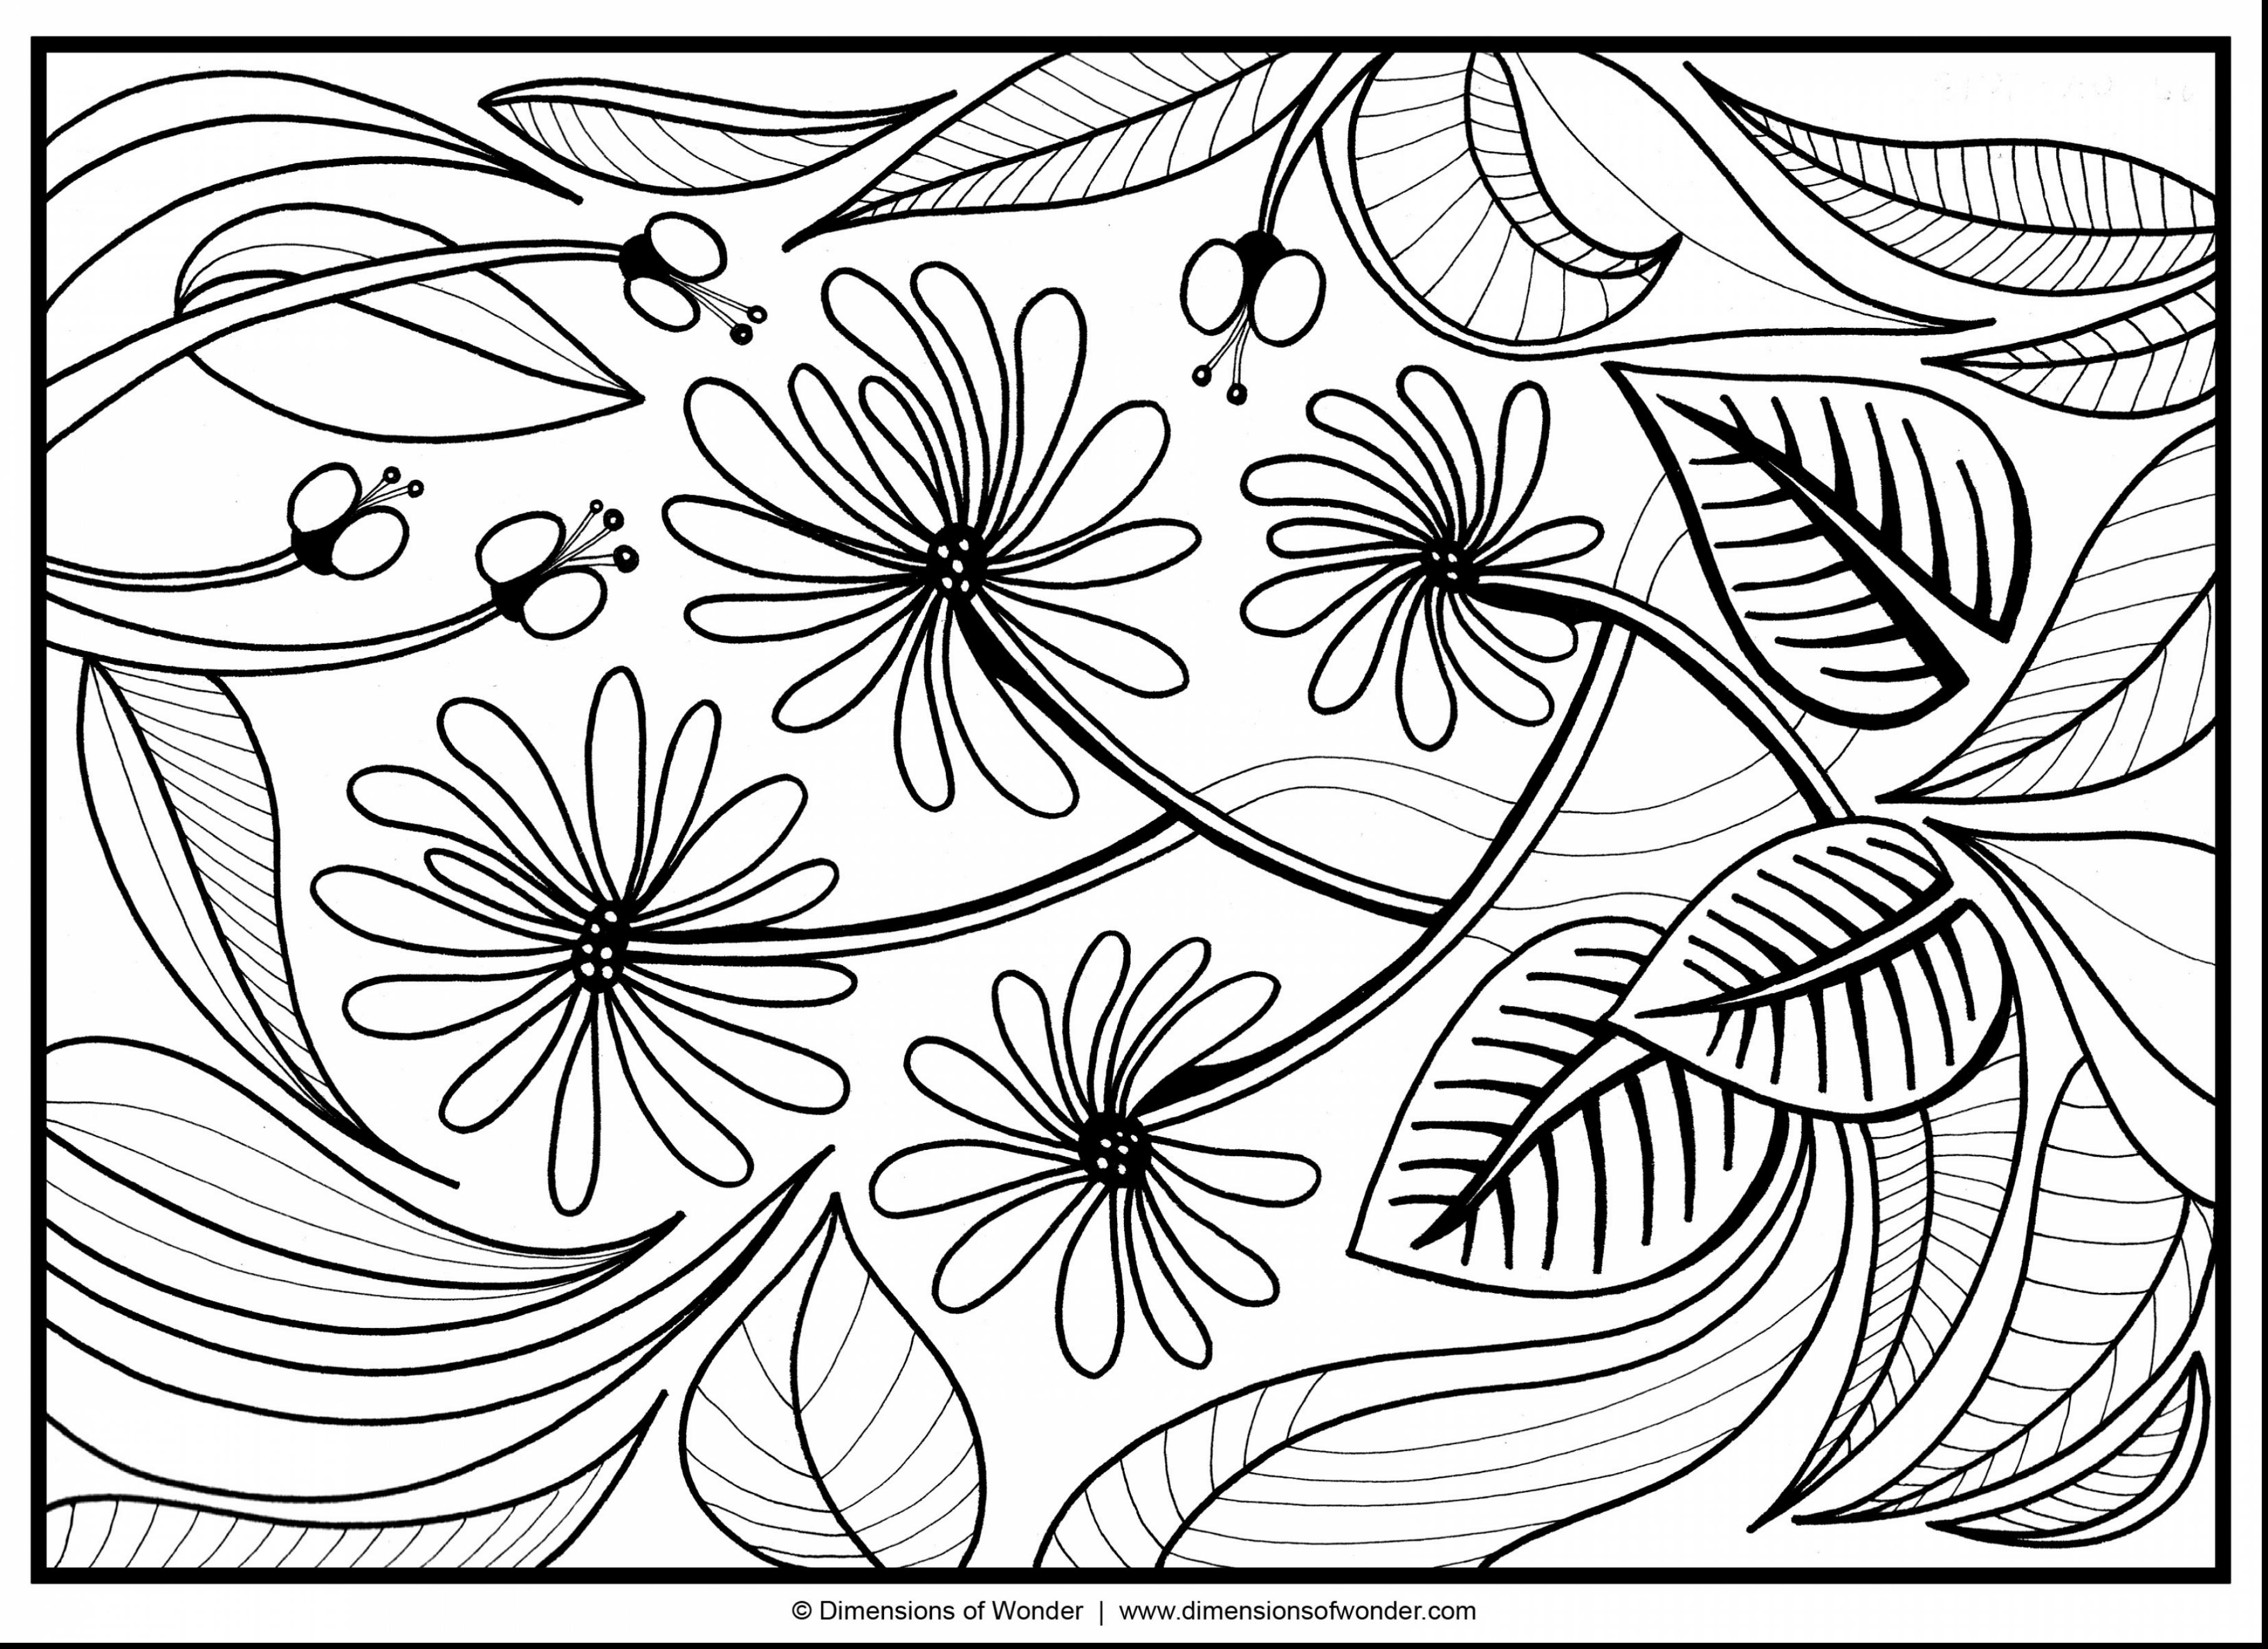 scandinavian flags coloring scandinavian coloring pages at getdrawings free download coloring flags scandinavian